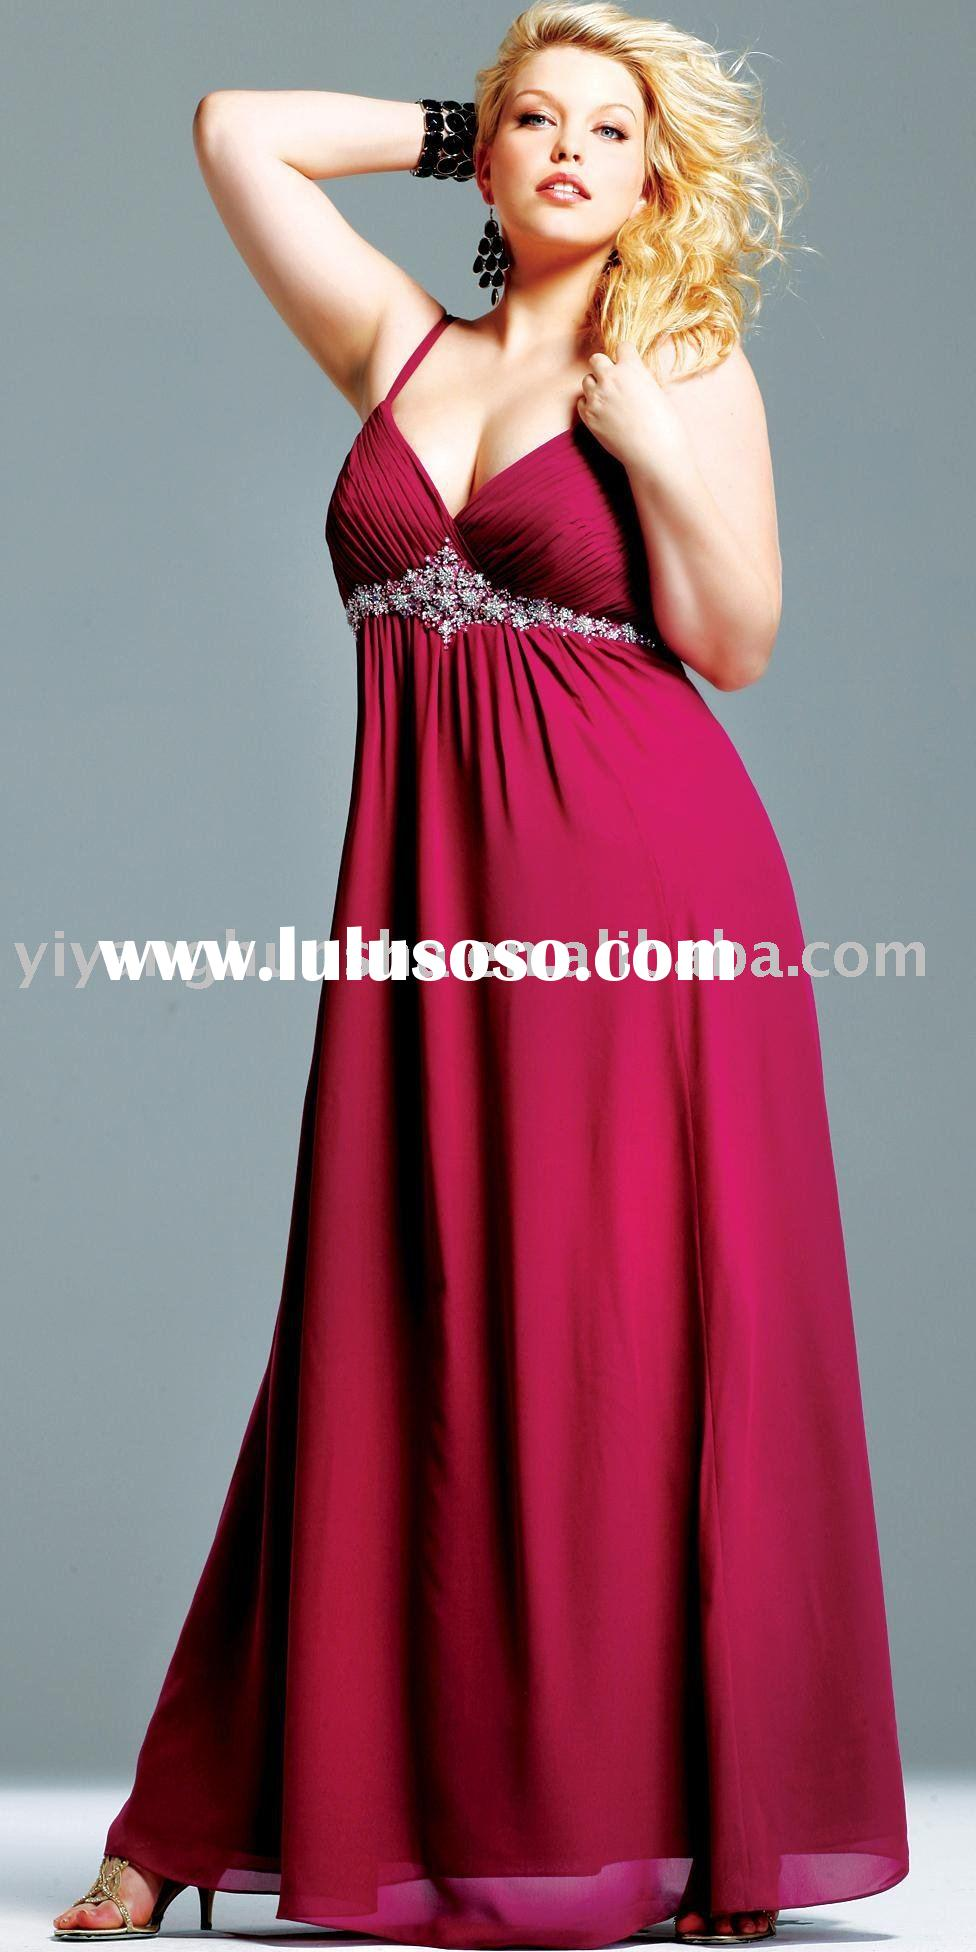 Plus Size Evening Dress Malaysia Shopping Guide We Are